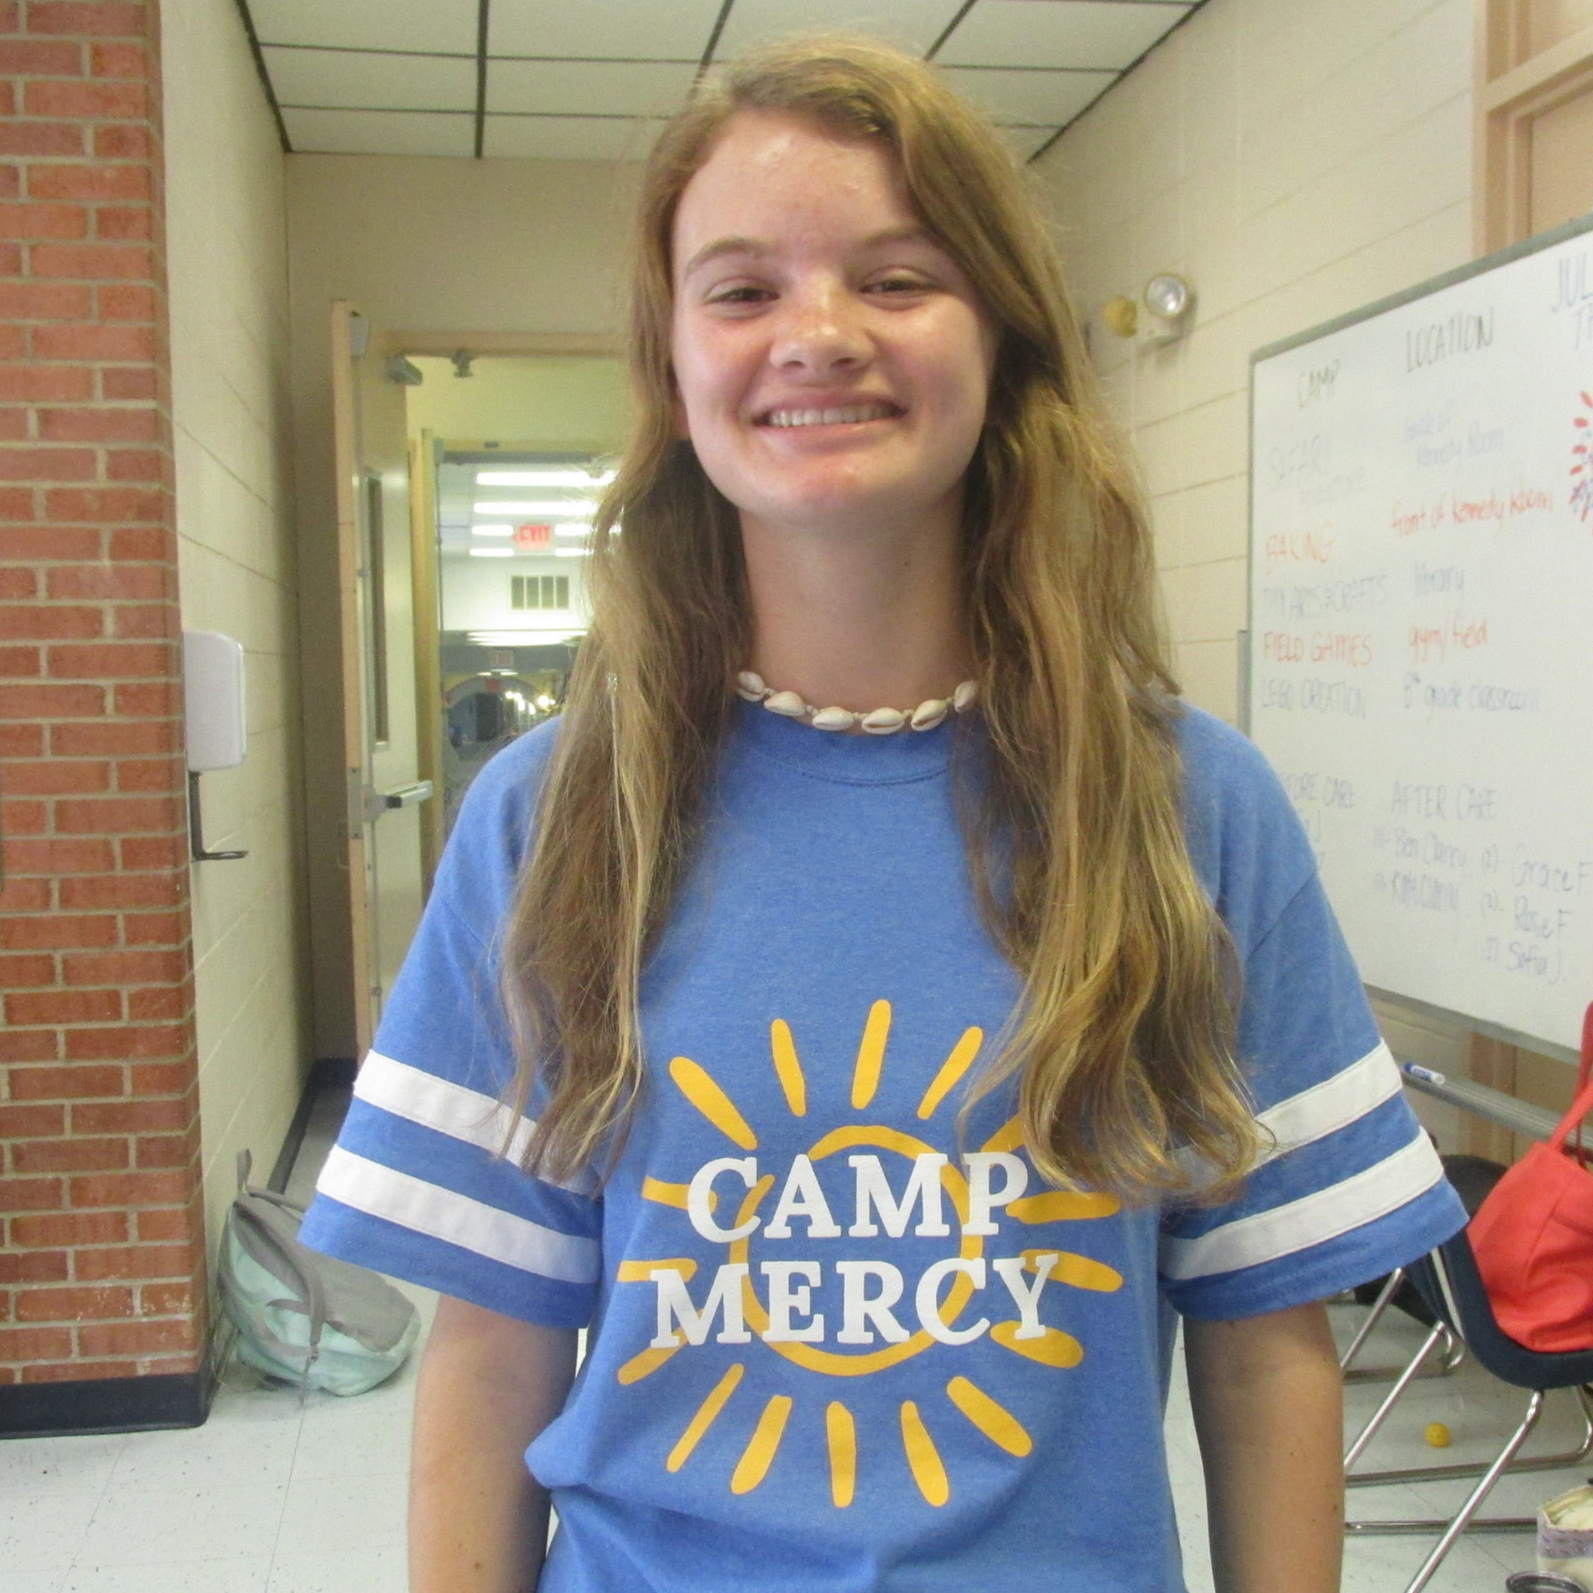 kate clancy - Hi! I'm Kate Clancy, and I'll be a junior at Georgetown Visitation this fall. I have five siblings and love working with kids! I also love baking, singing, and crafting and am so excited to be working at Camp Mercy!